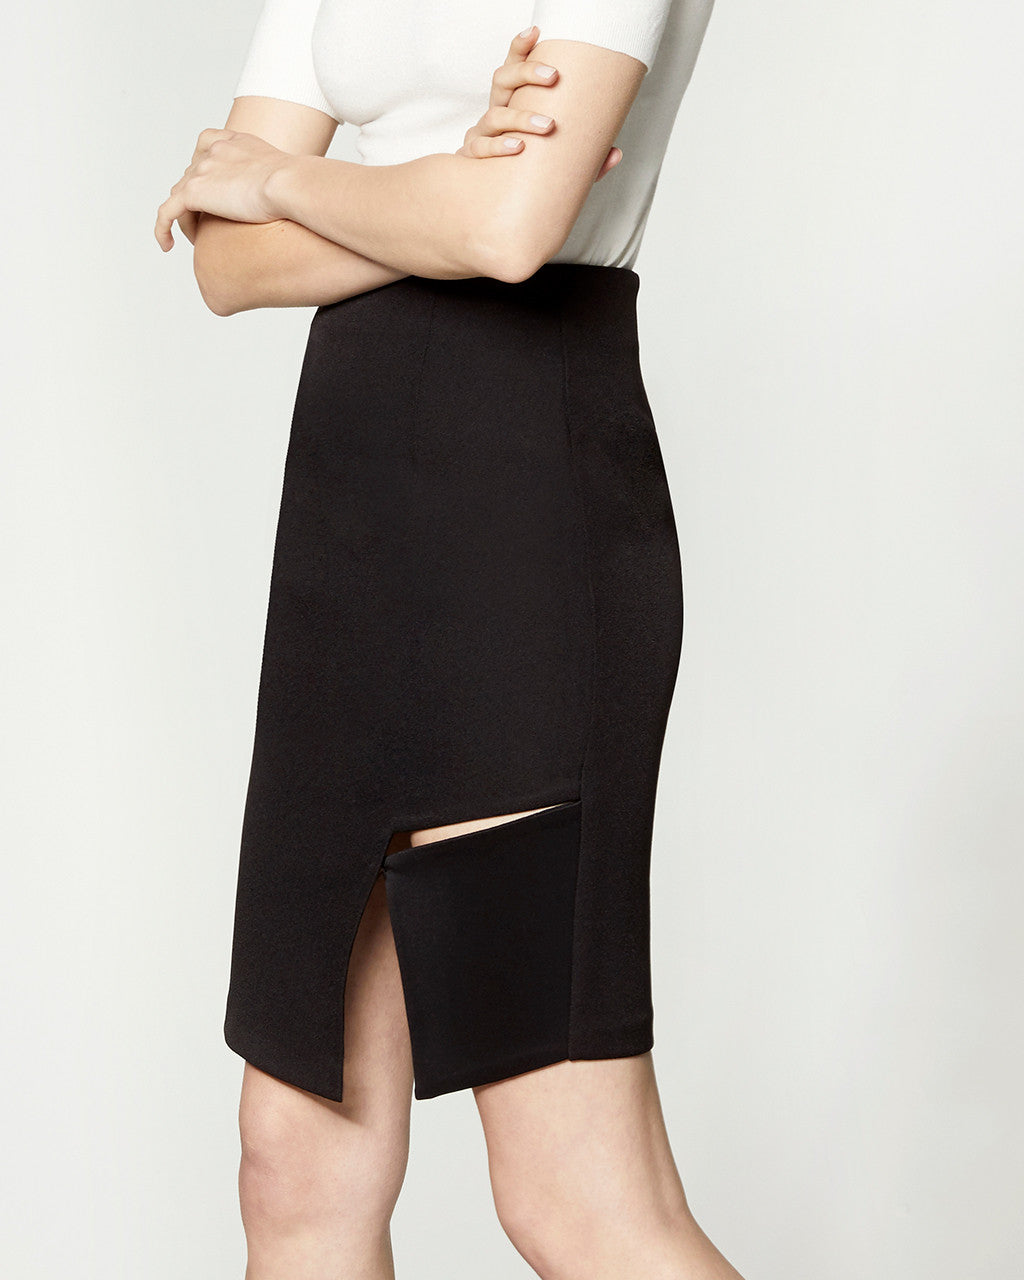 Square Cut-Out Skirt - Black